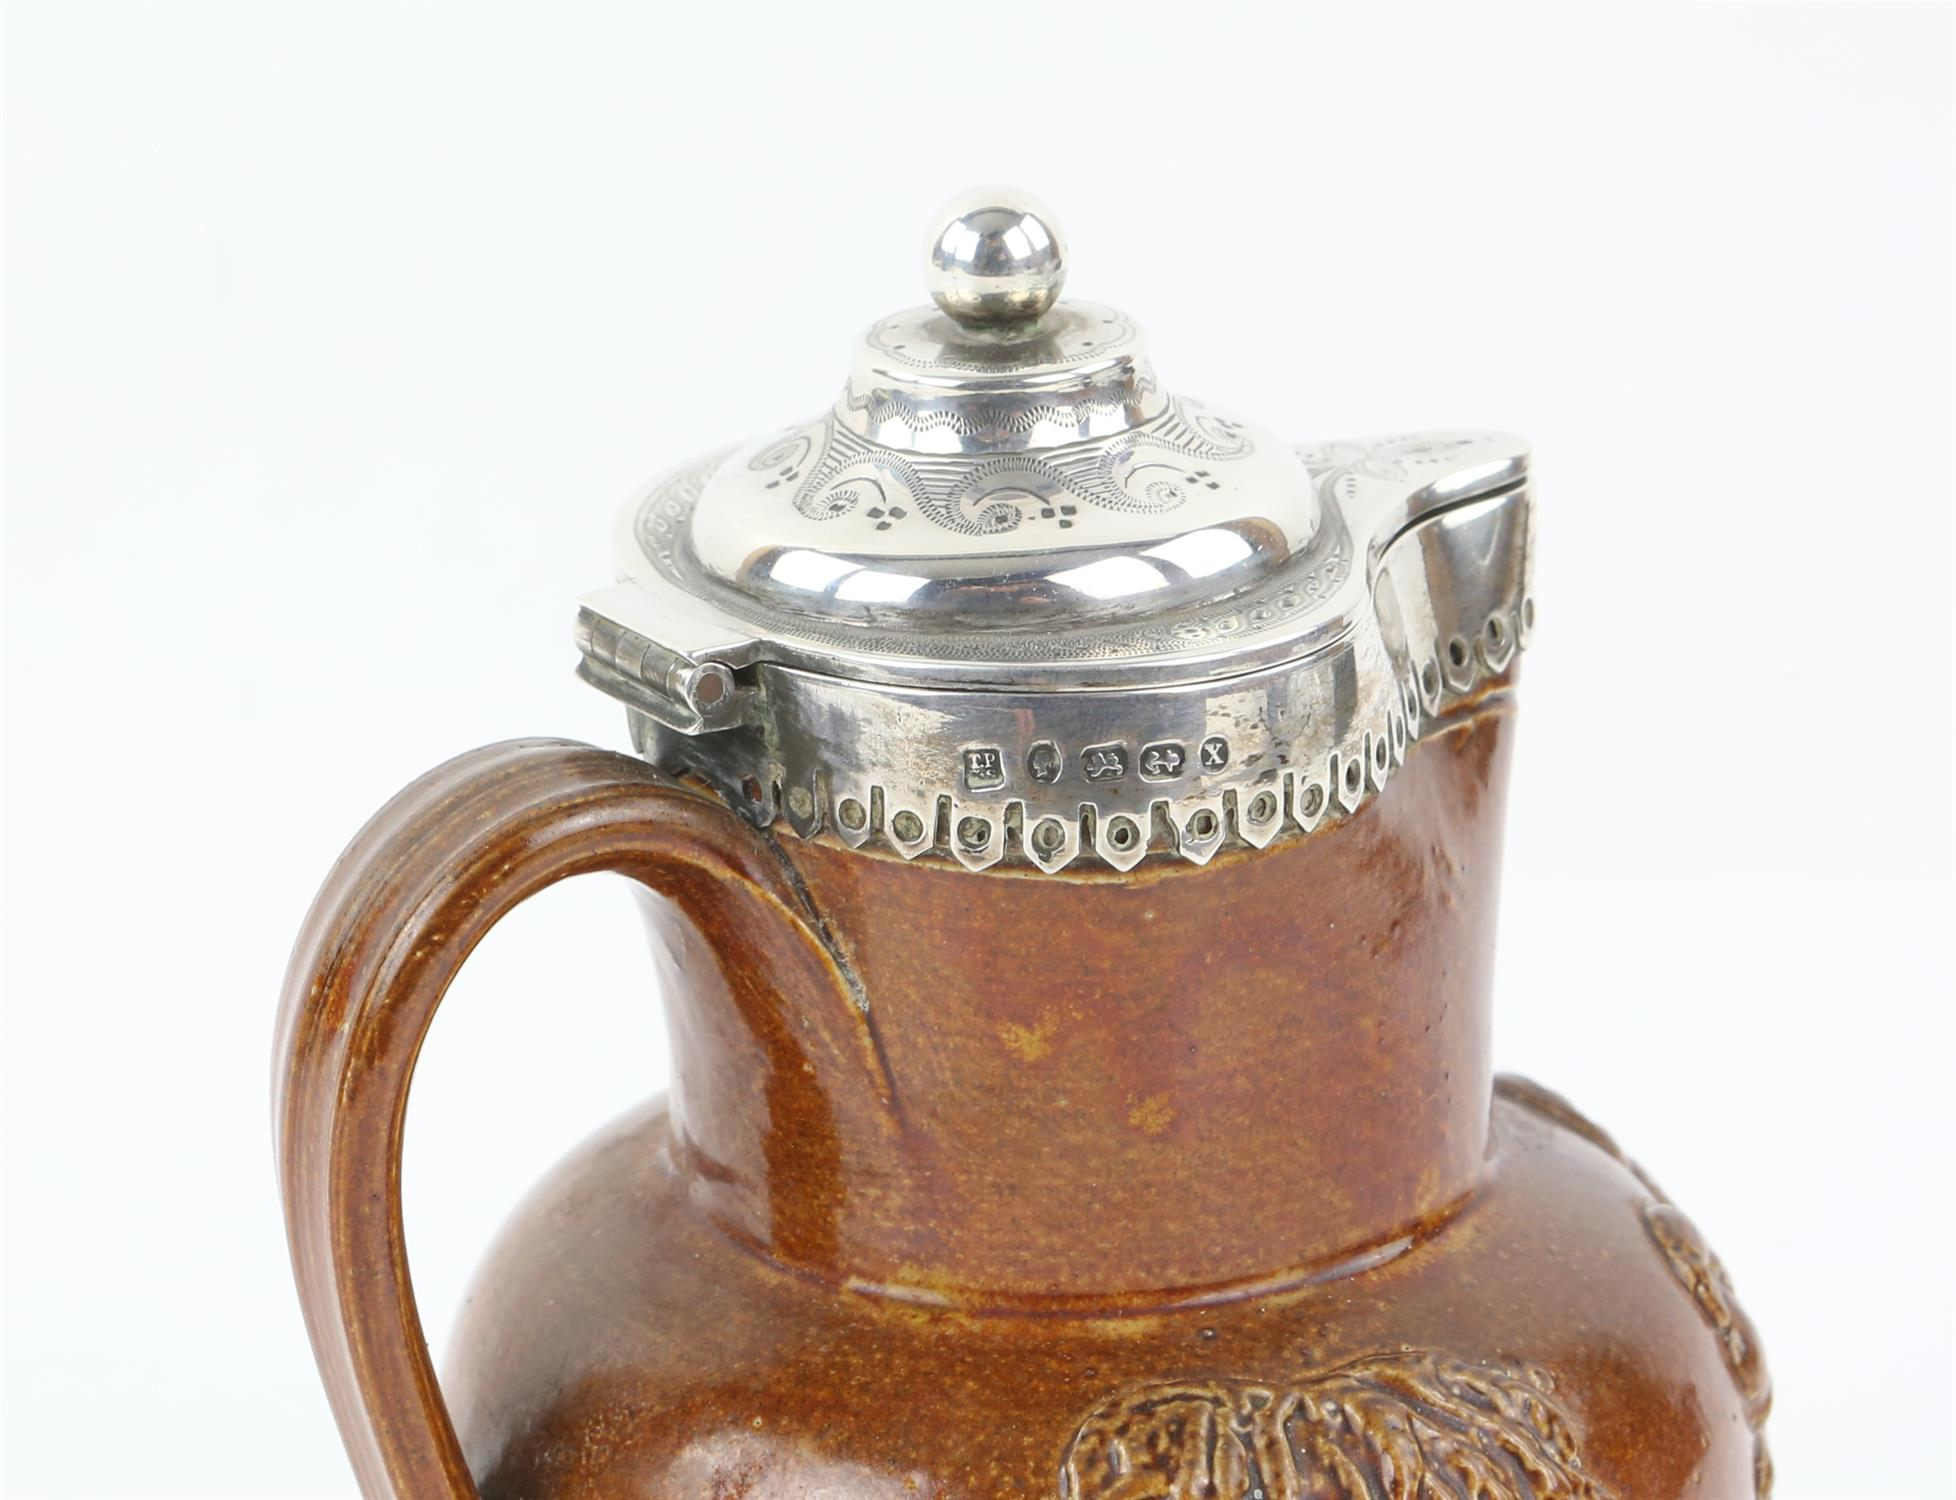 Silver mounted Victorian harvest jug by Thomas Prime and Son, Birmingham 1872 - Image 6 of 6